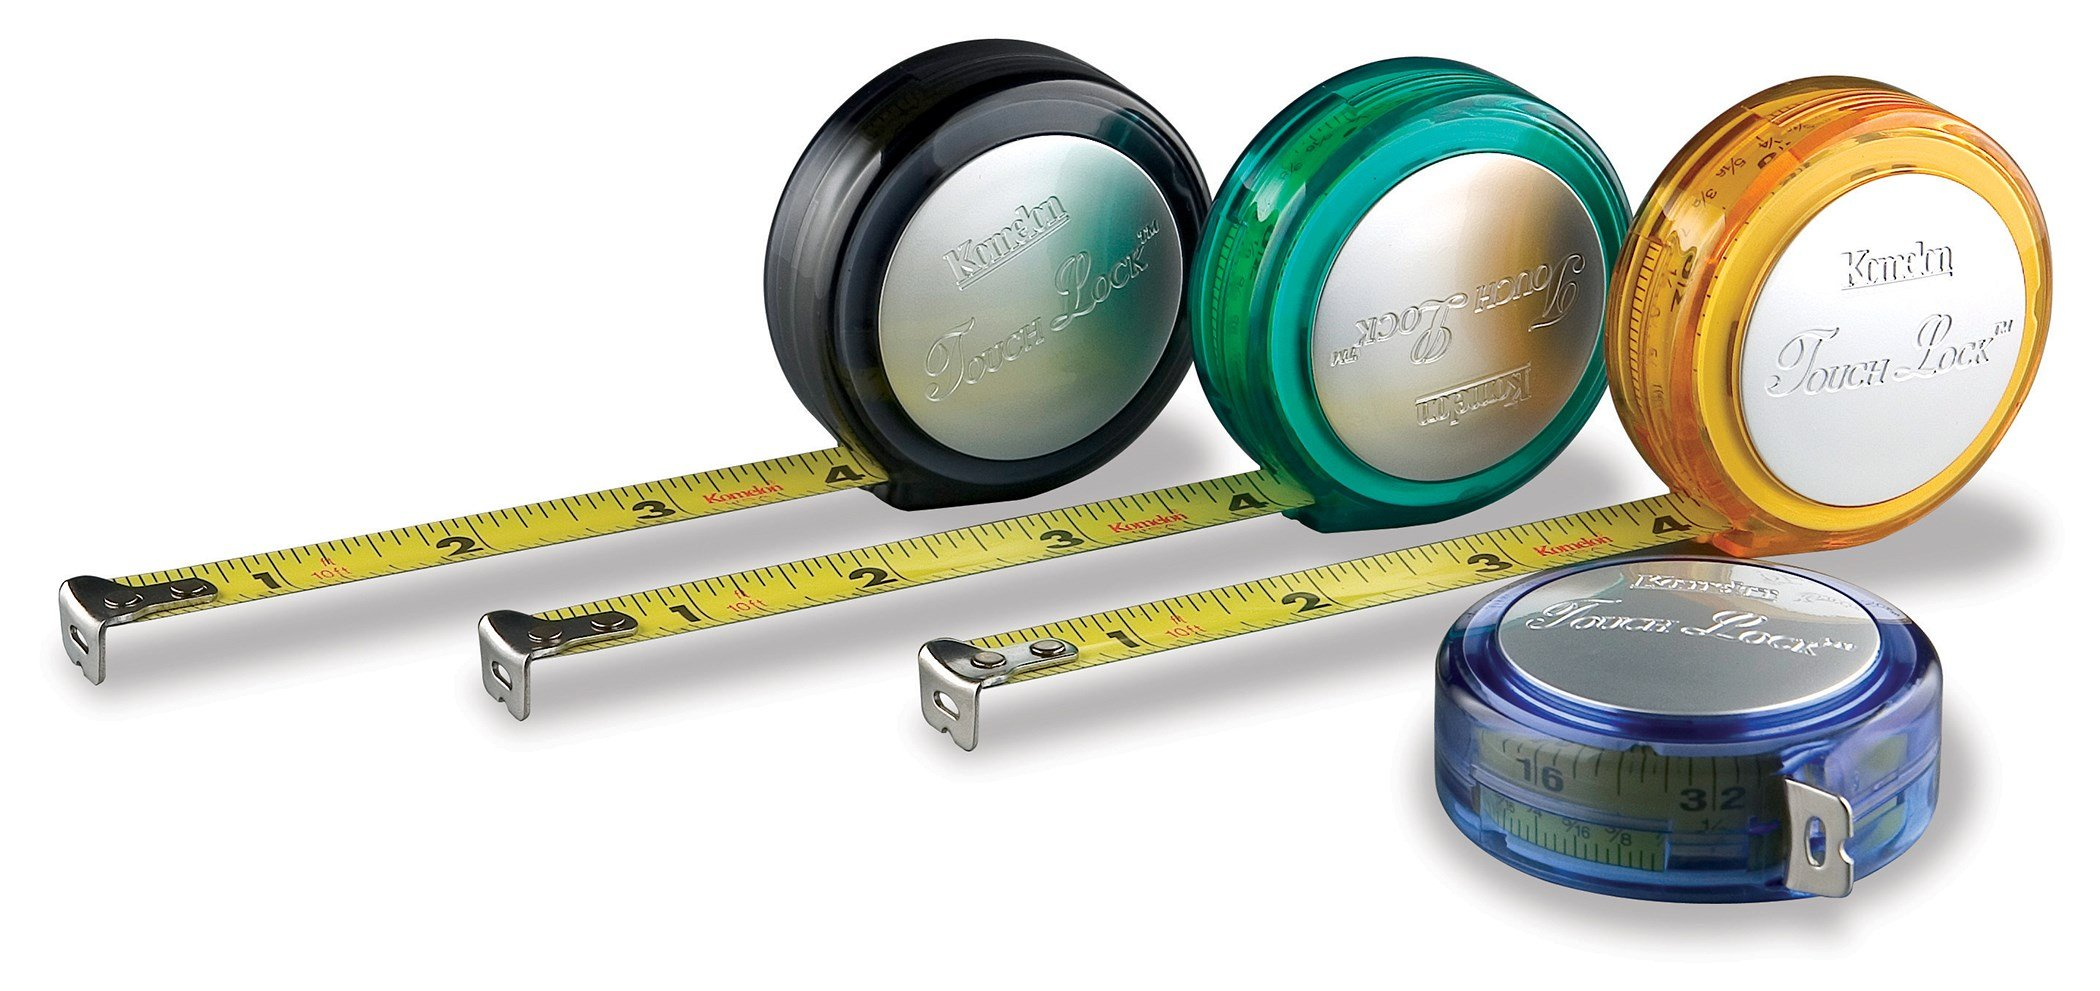 Komelon 3110 10-Foot Touch Lock Tape Measure - 6 Pack by Komelon